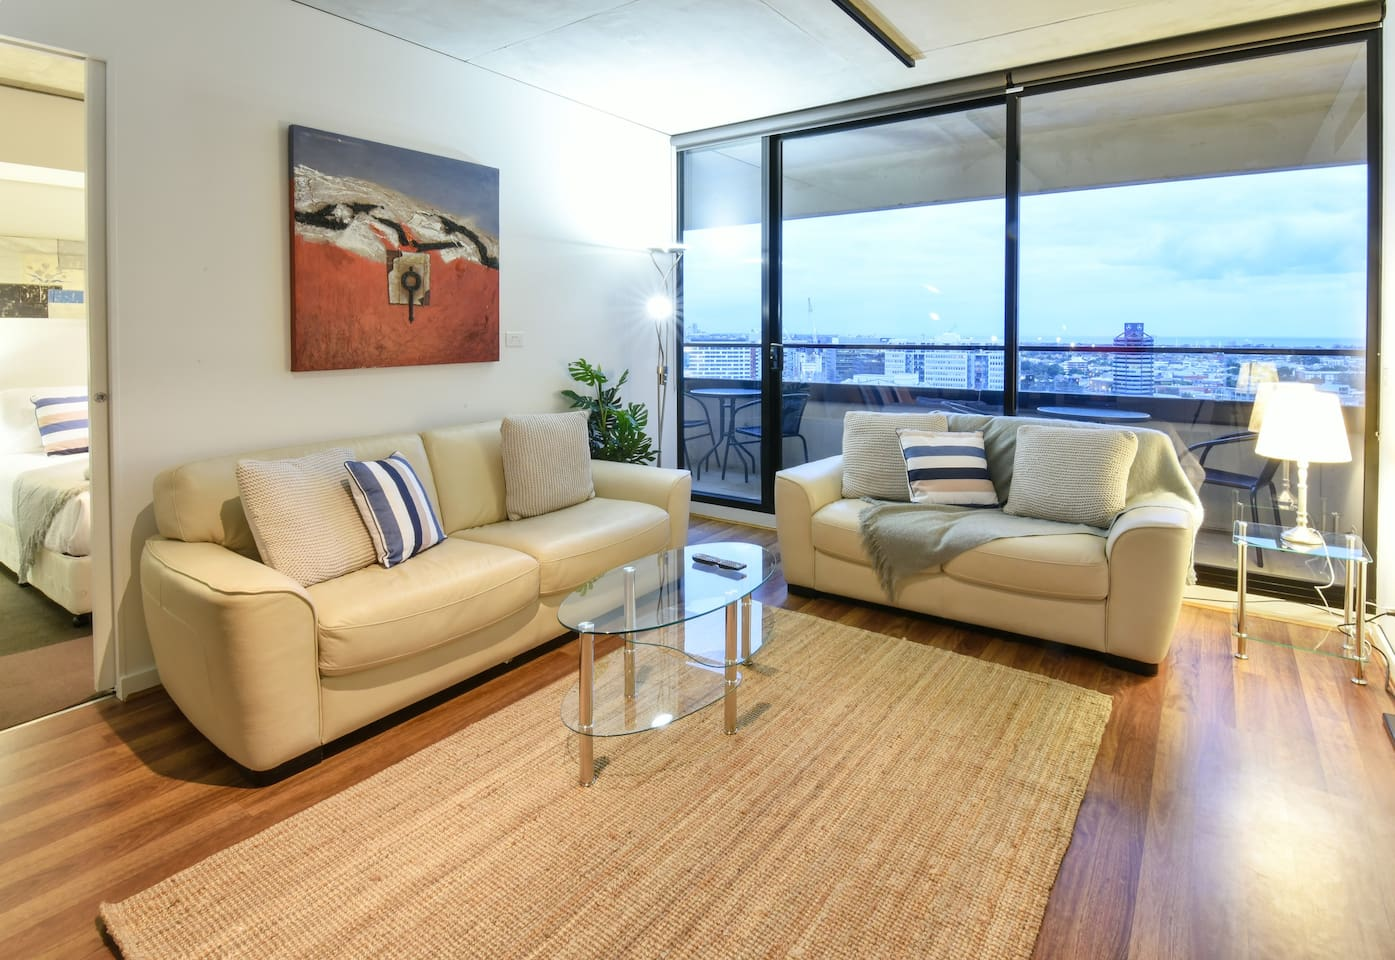 Lounge room with sliding door to balcony and bay views